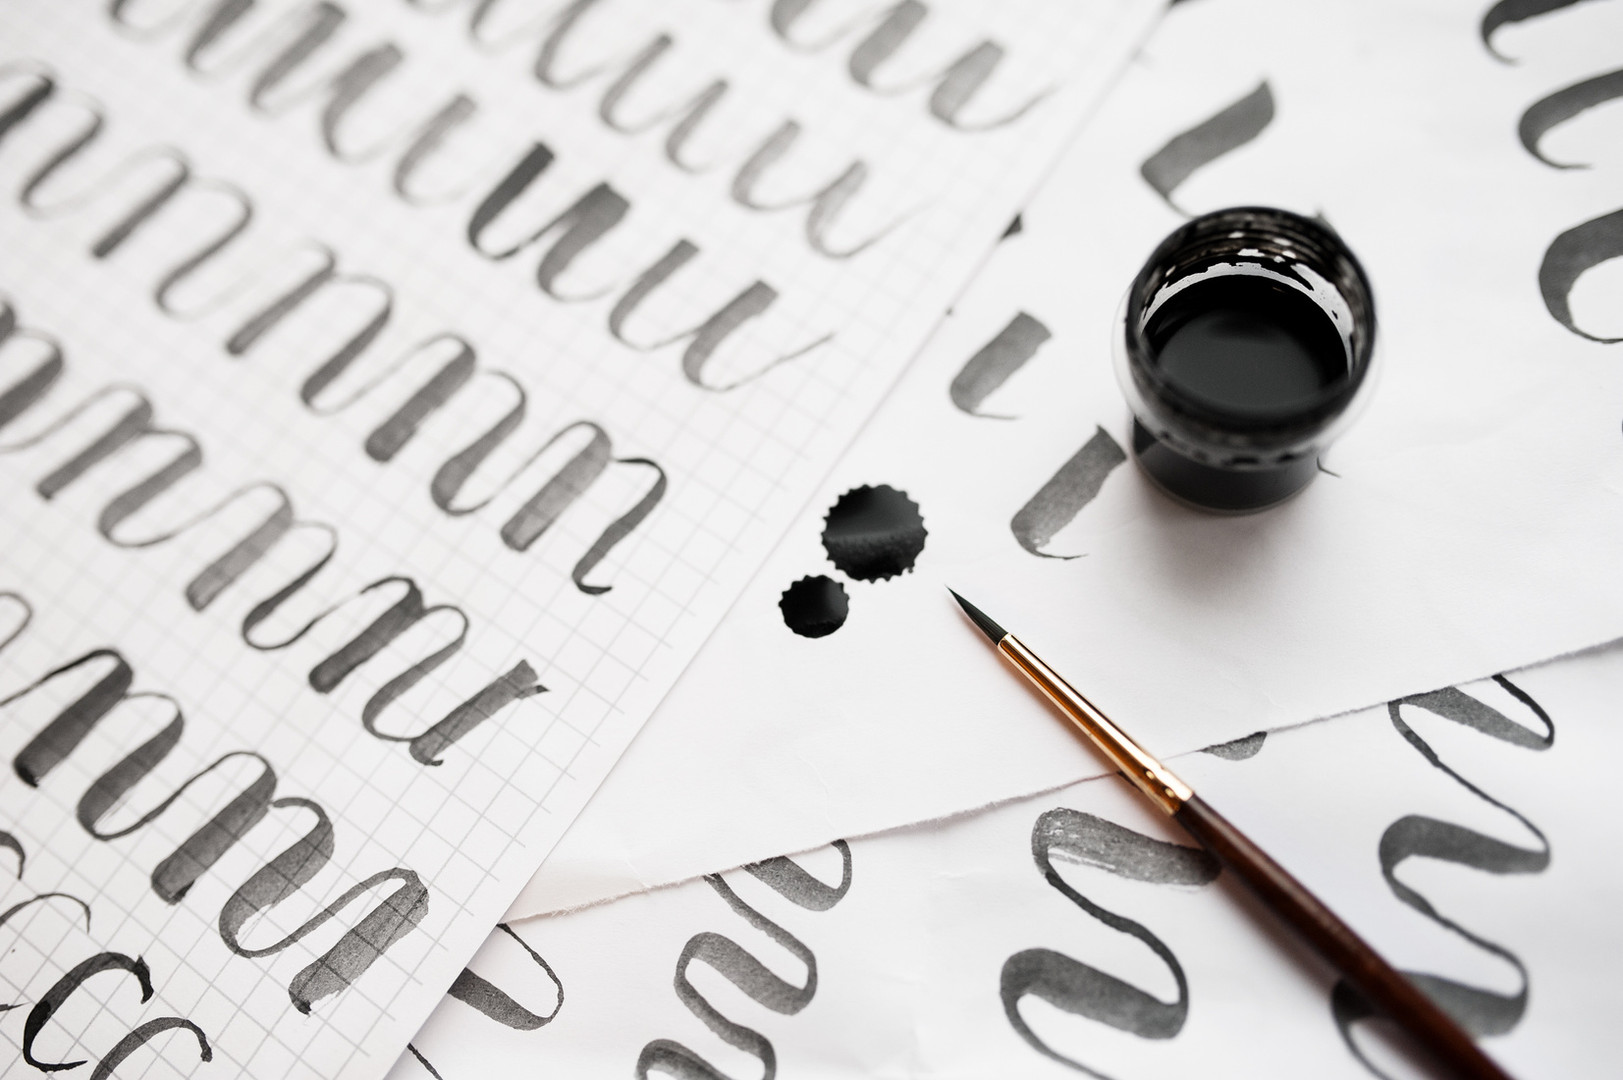 059841069-learning-calligraphy-paper-exa